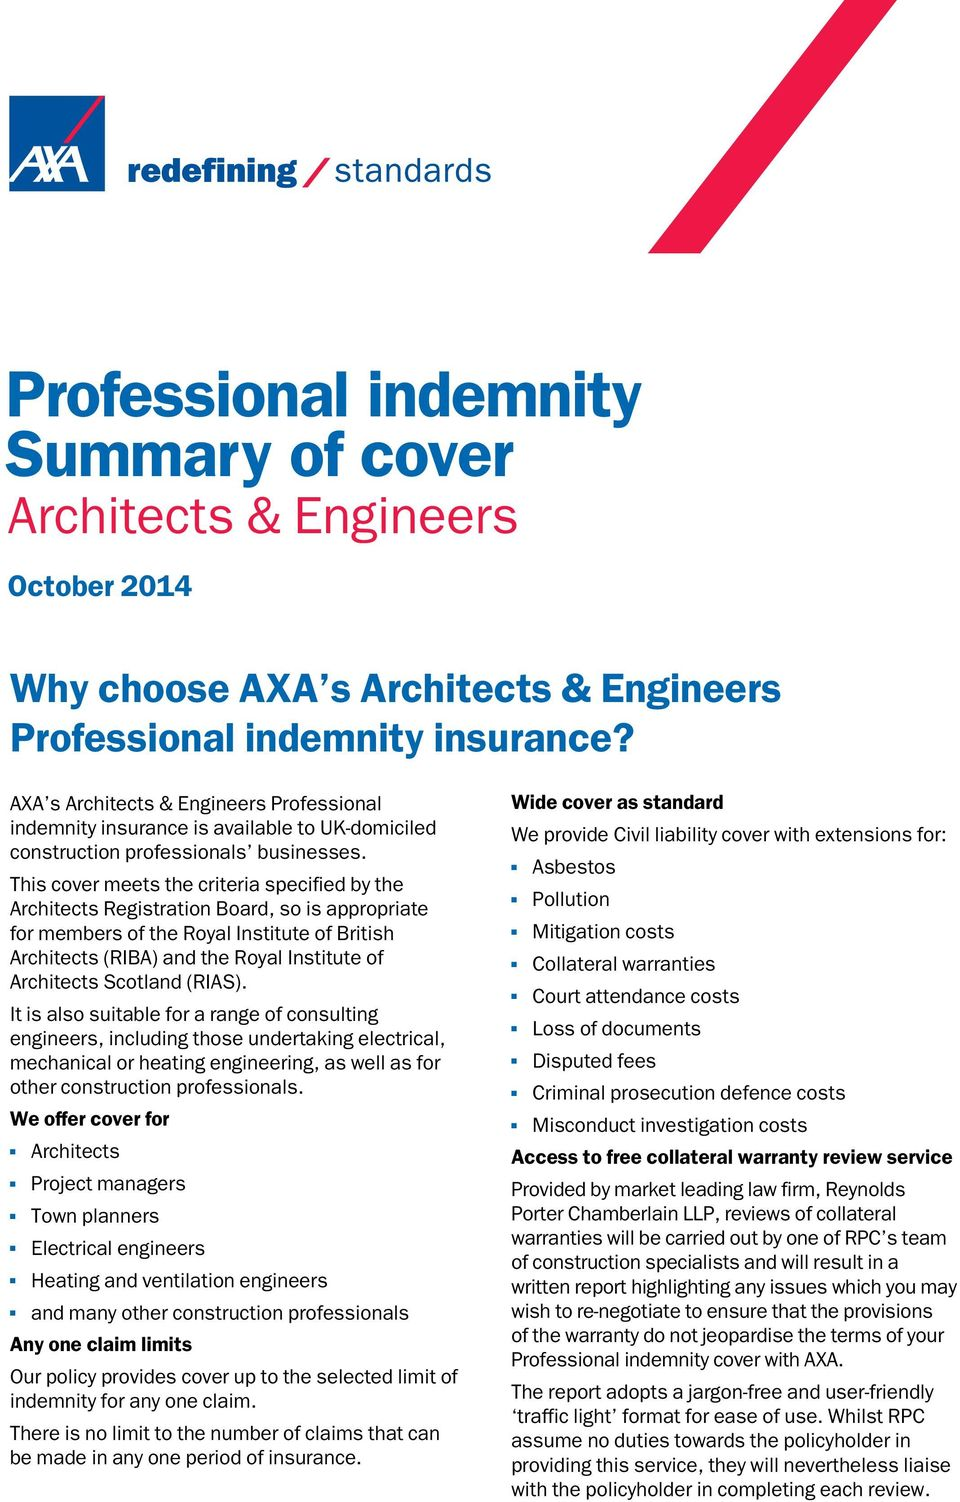 This cover meets the criteria specified by the Architects Registration Board, so is appropriate for members of the Royal Institute of British Architects (RIBA) and the Royal Institute of Architects